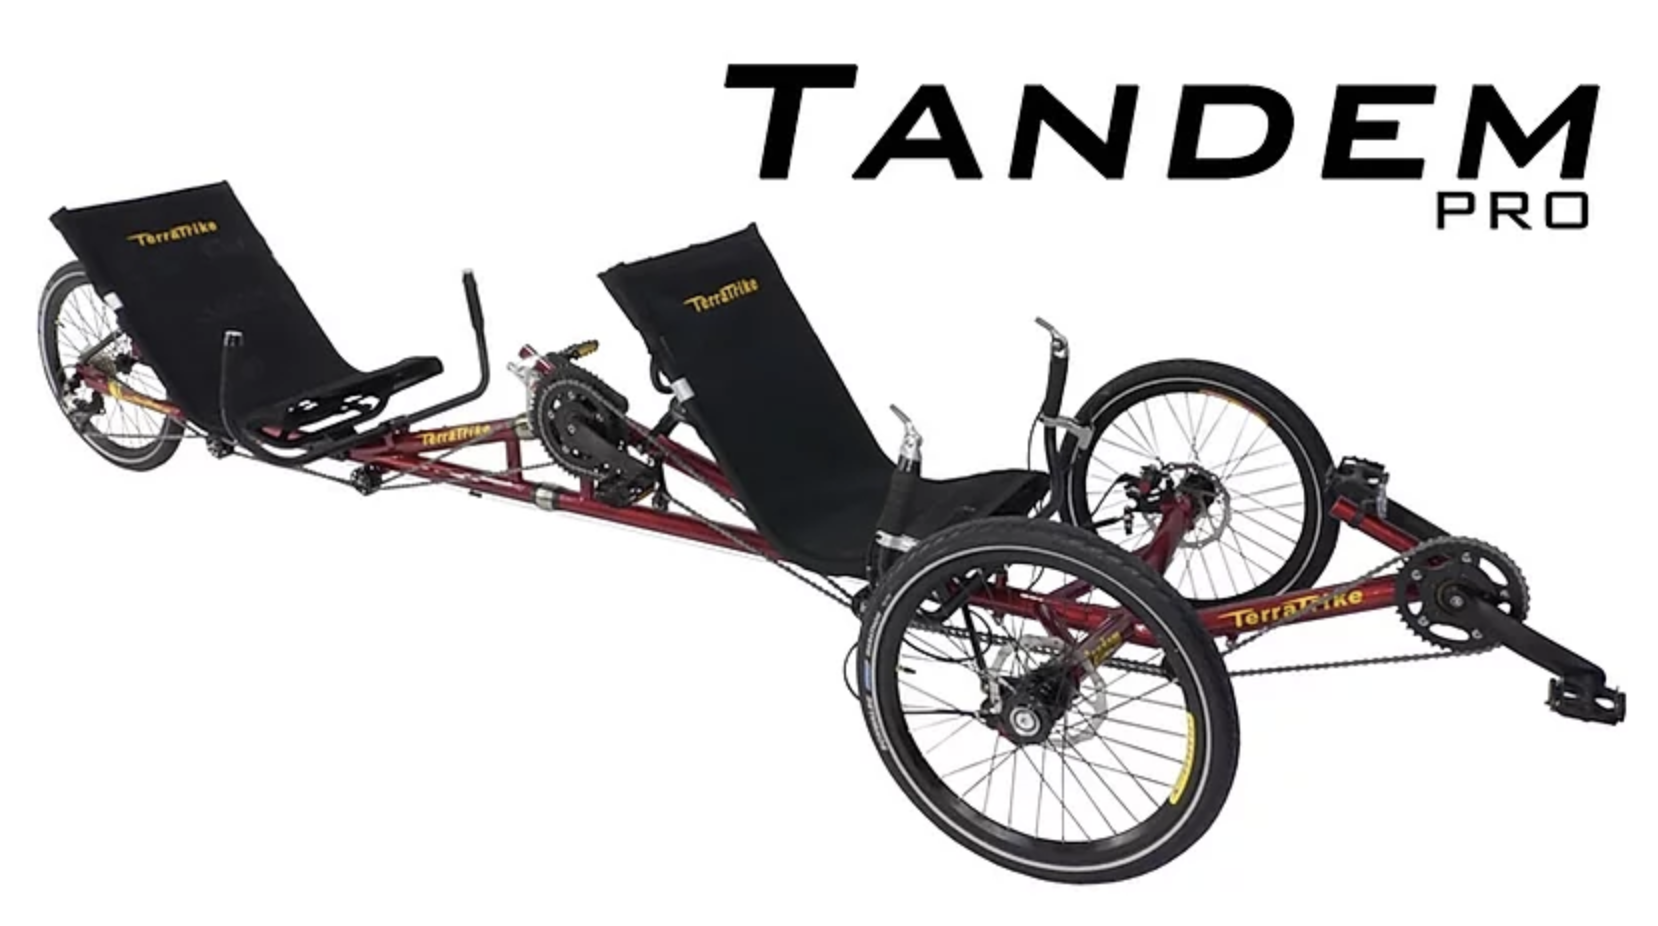 Rent a tandem bike in dunedin